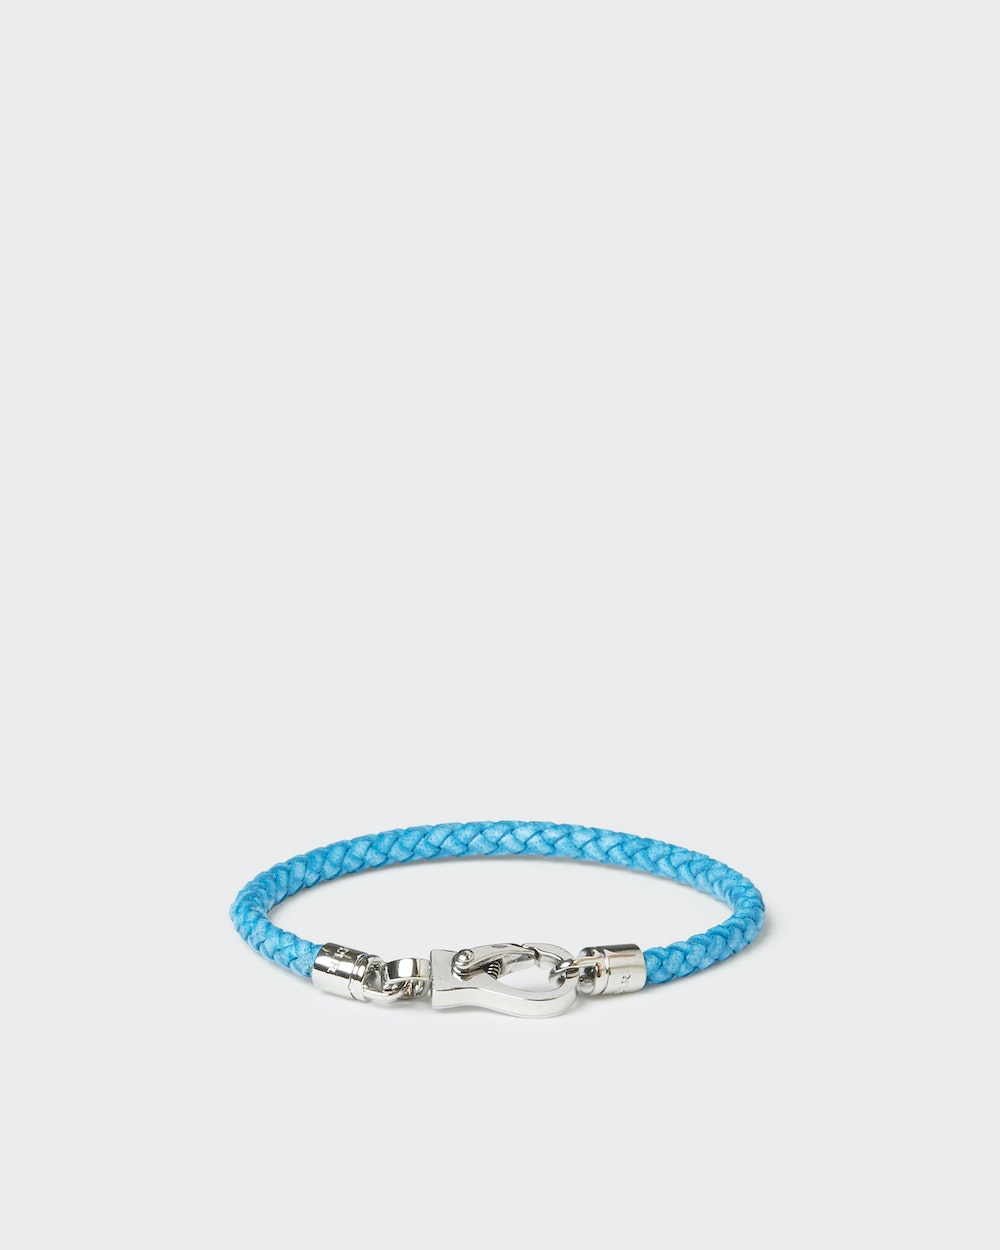 Bracelet Blue Saddler